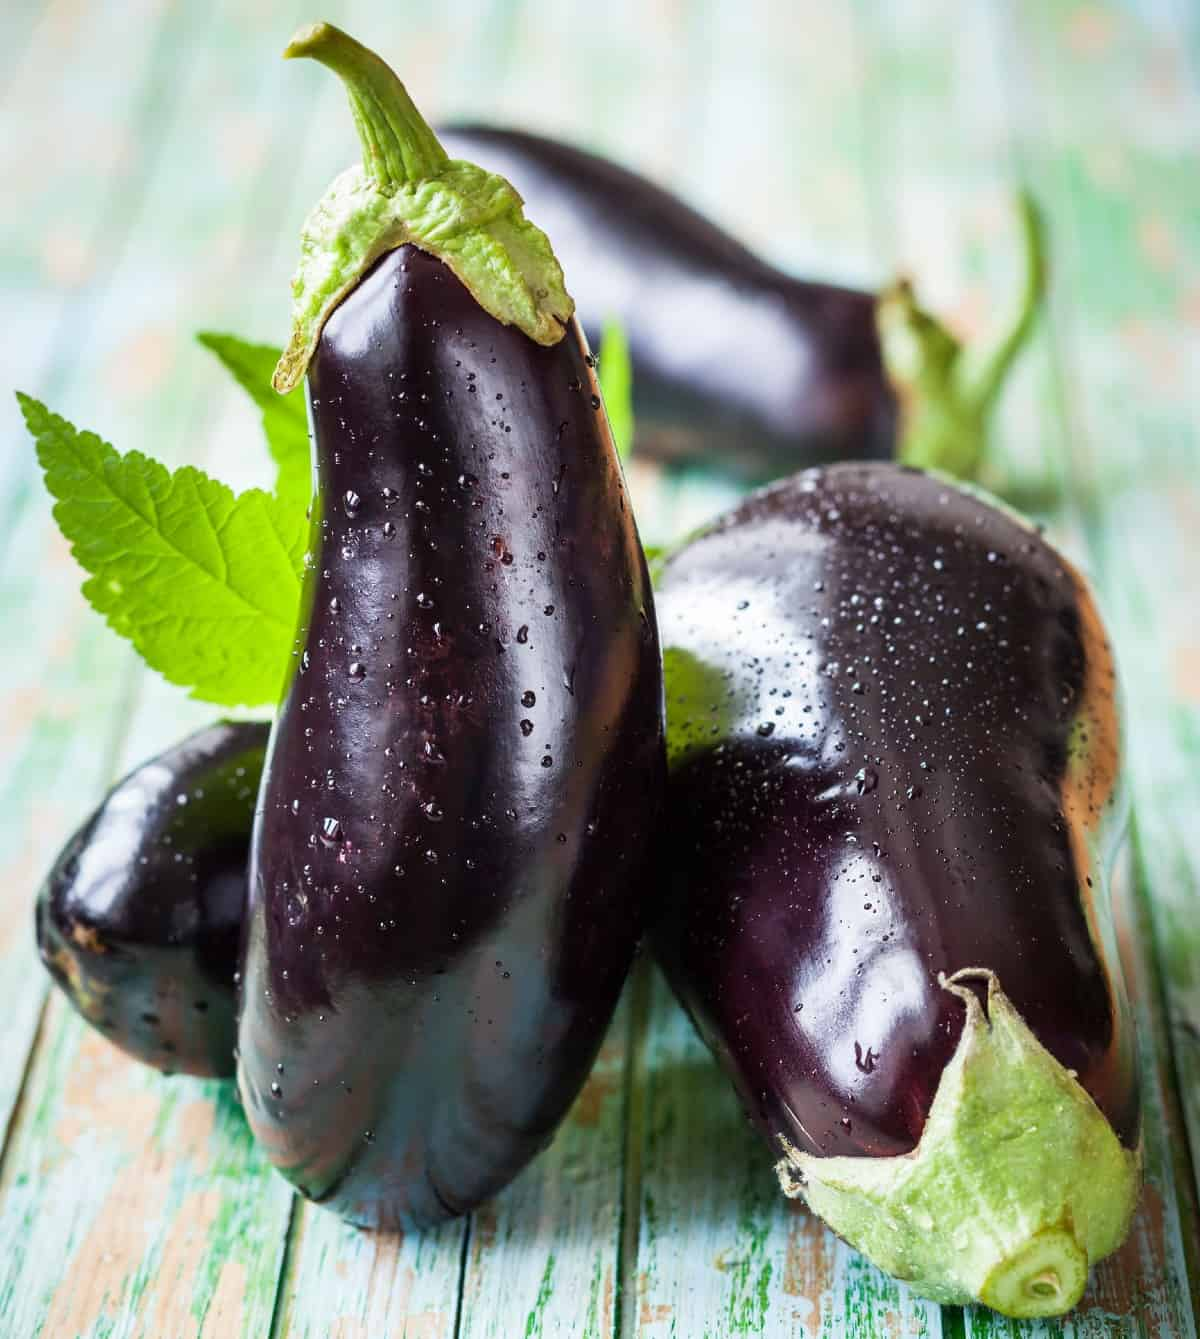 eggplant has very specific heat and light requirements